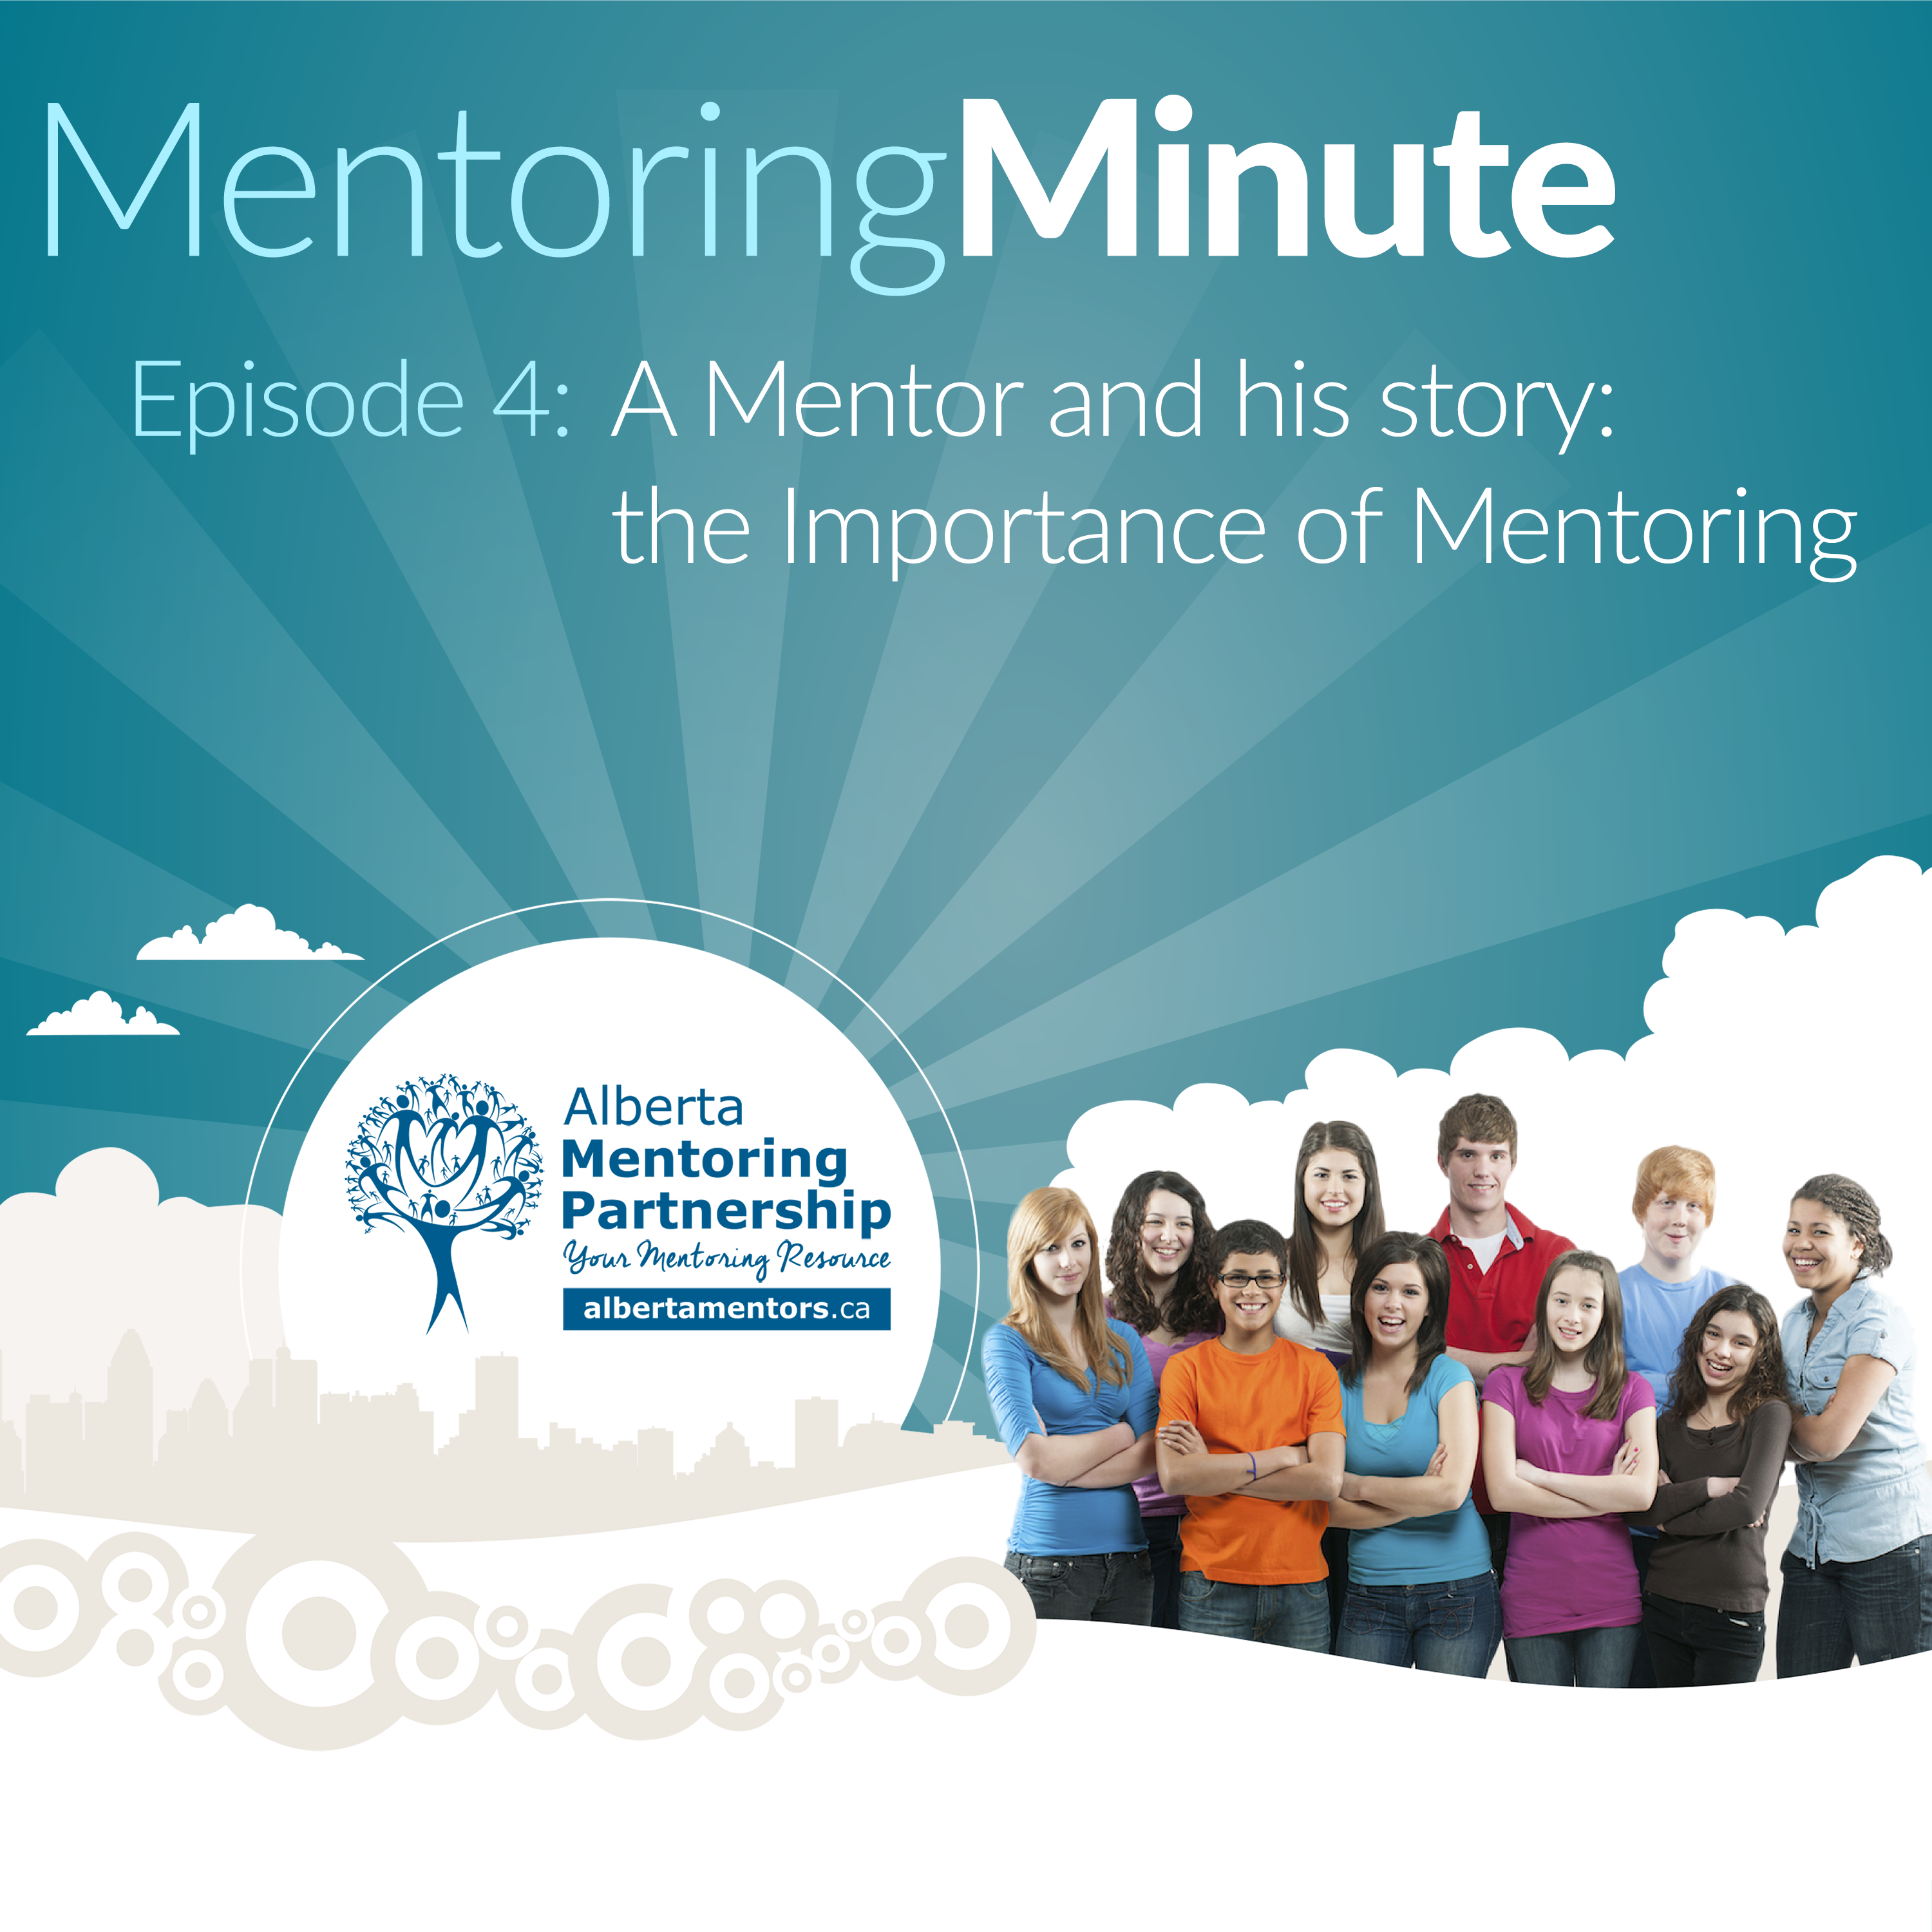 episode-4-a-mentor-and-his-story-the-importance-of-mentoring-mentoringminute